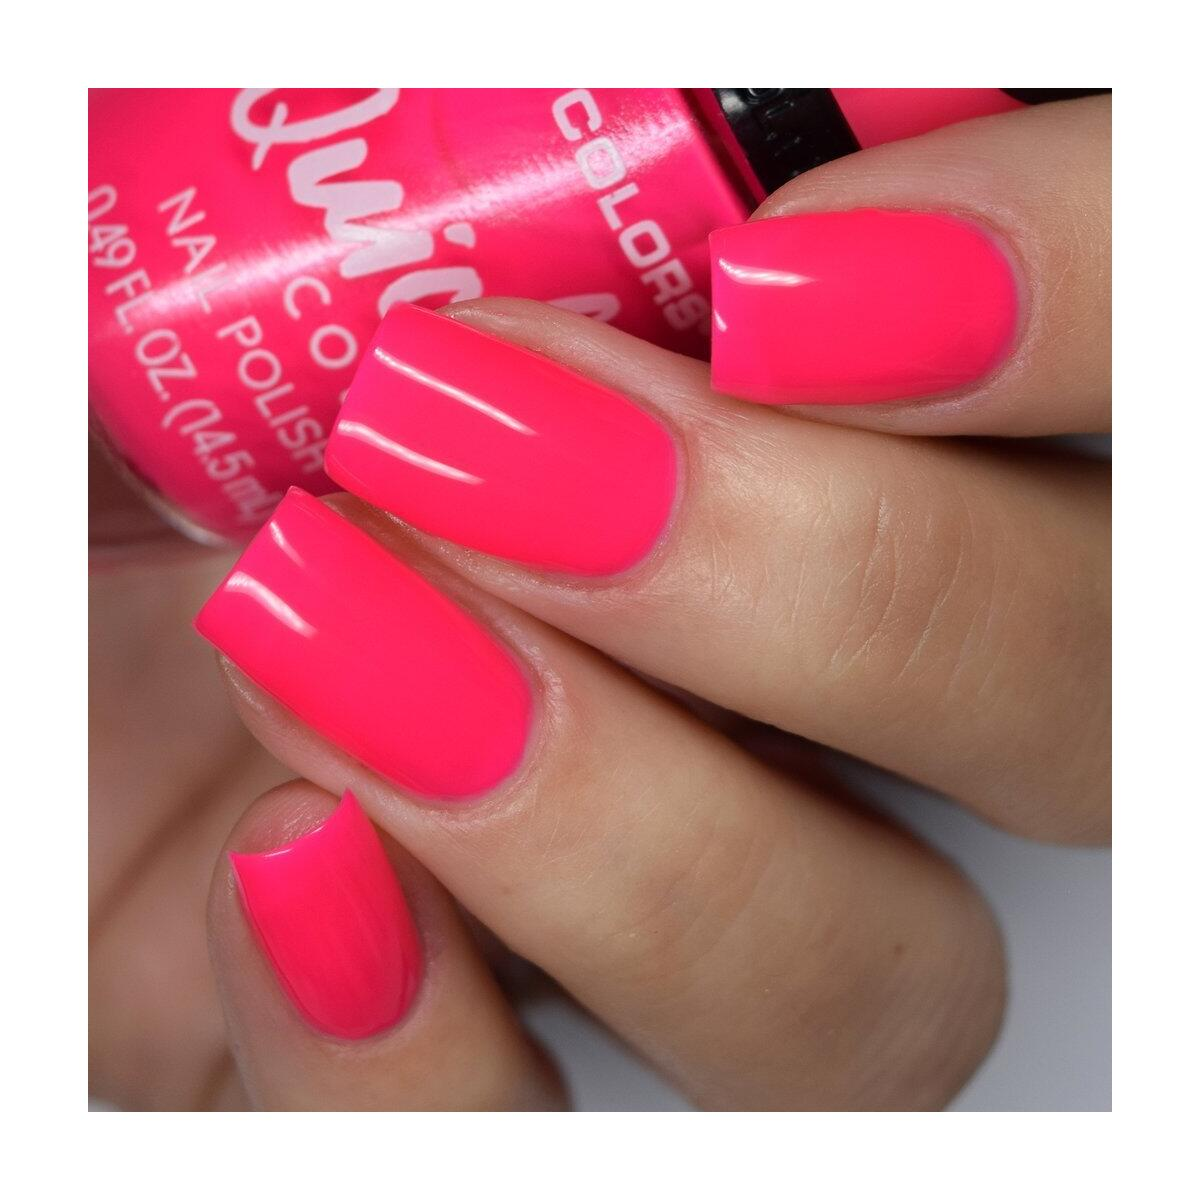 L.A. GIRL Quick Color Fast Drying Polish